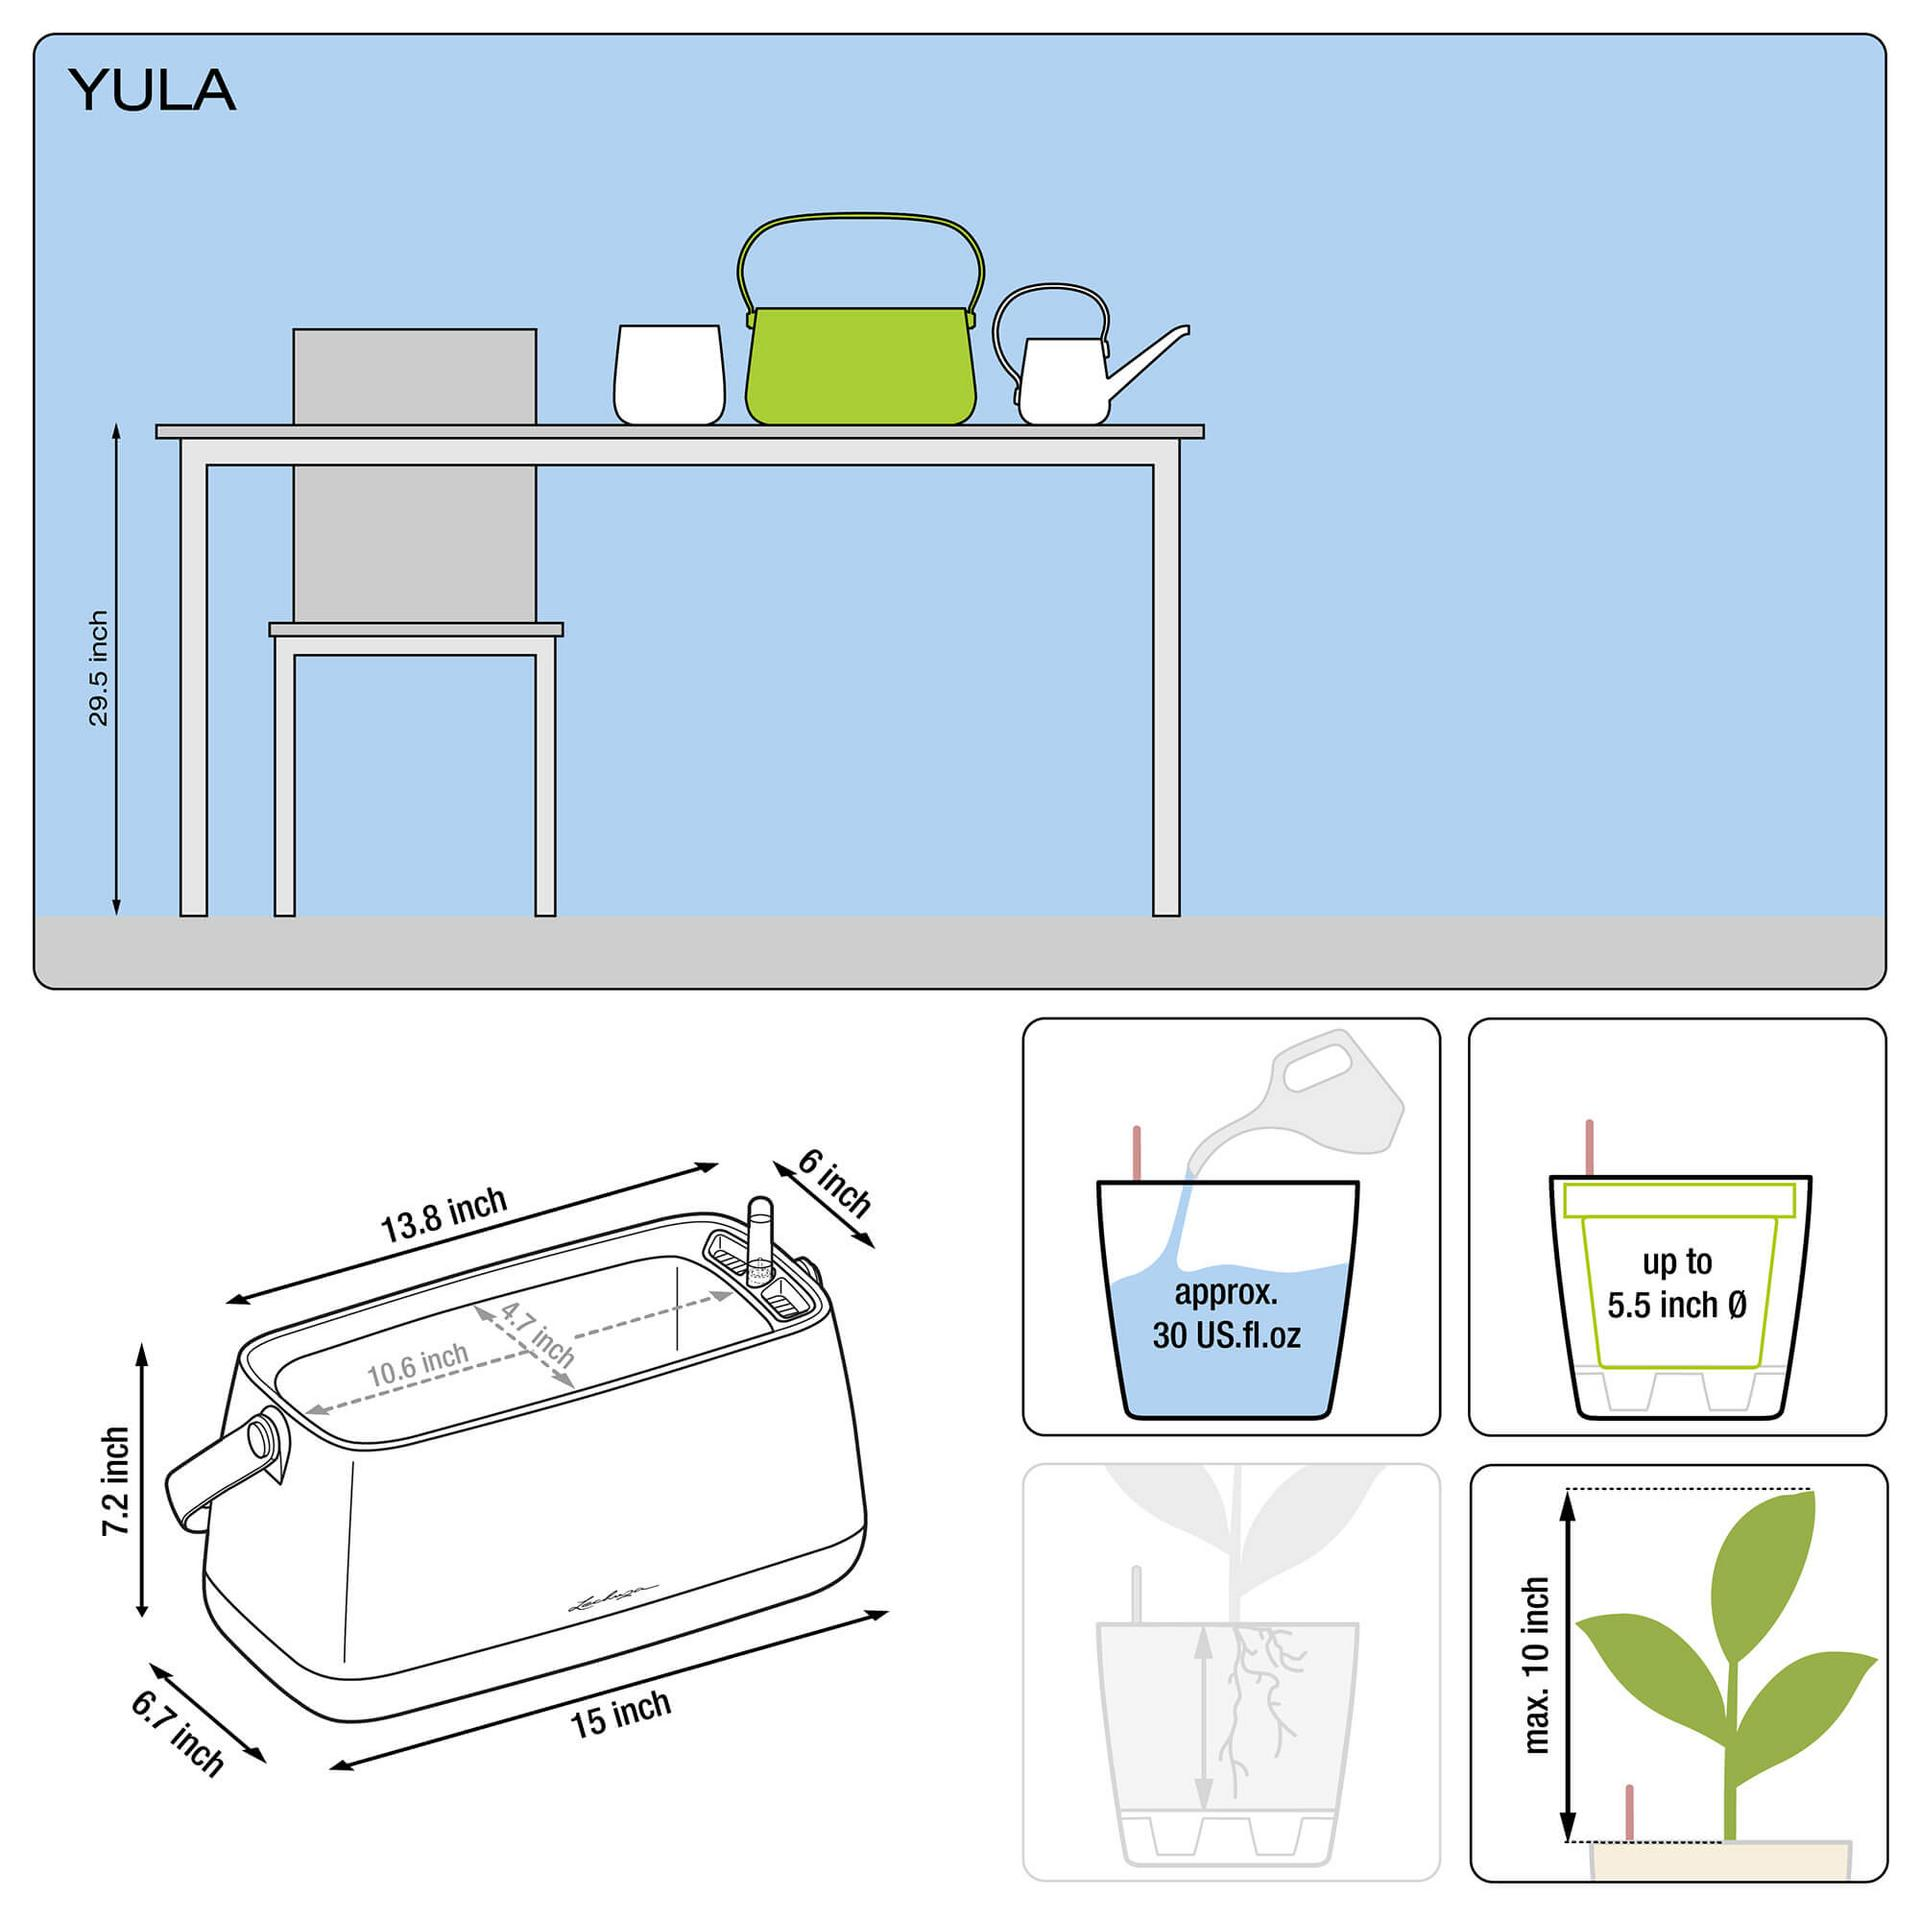 le_yula-pflanztasche_product_addi_nz_us